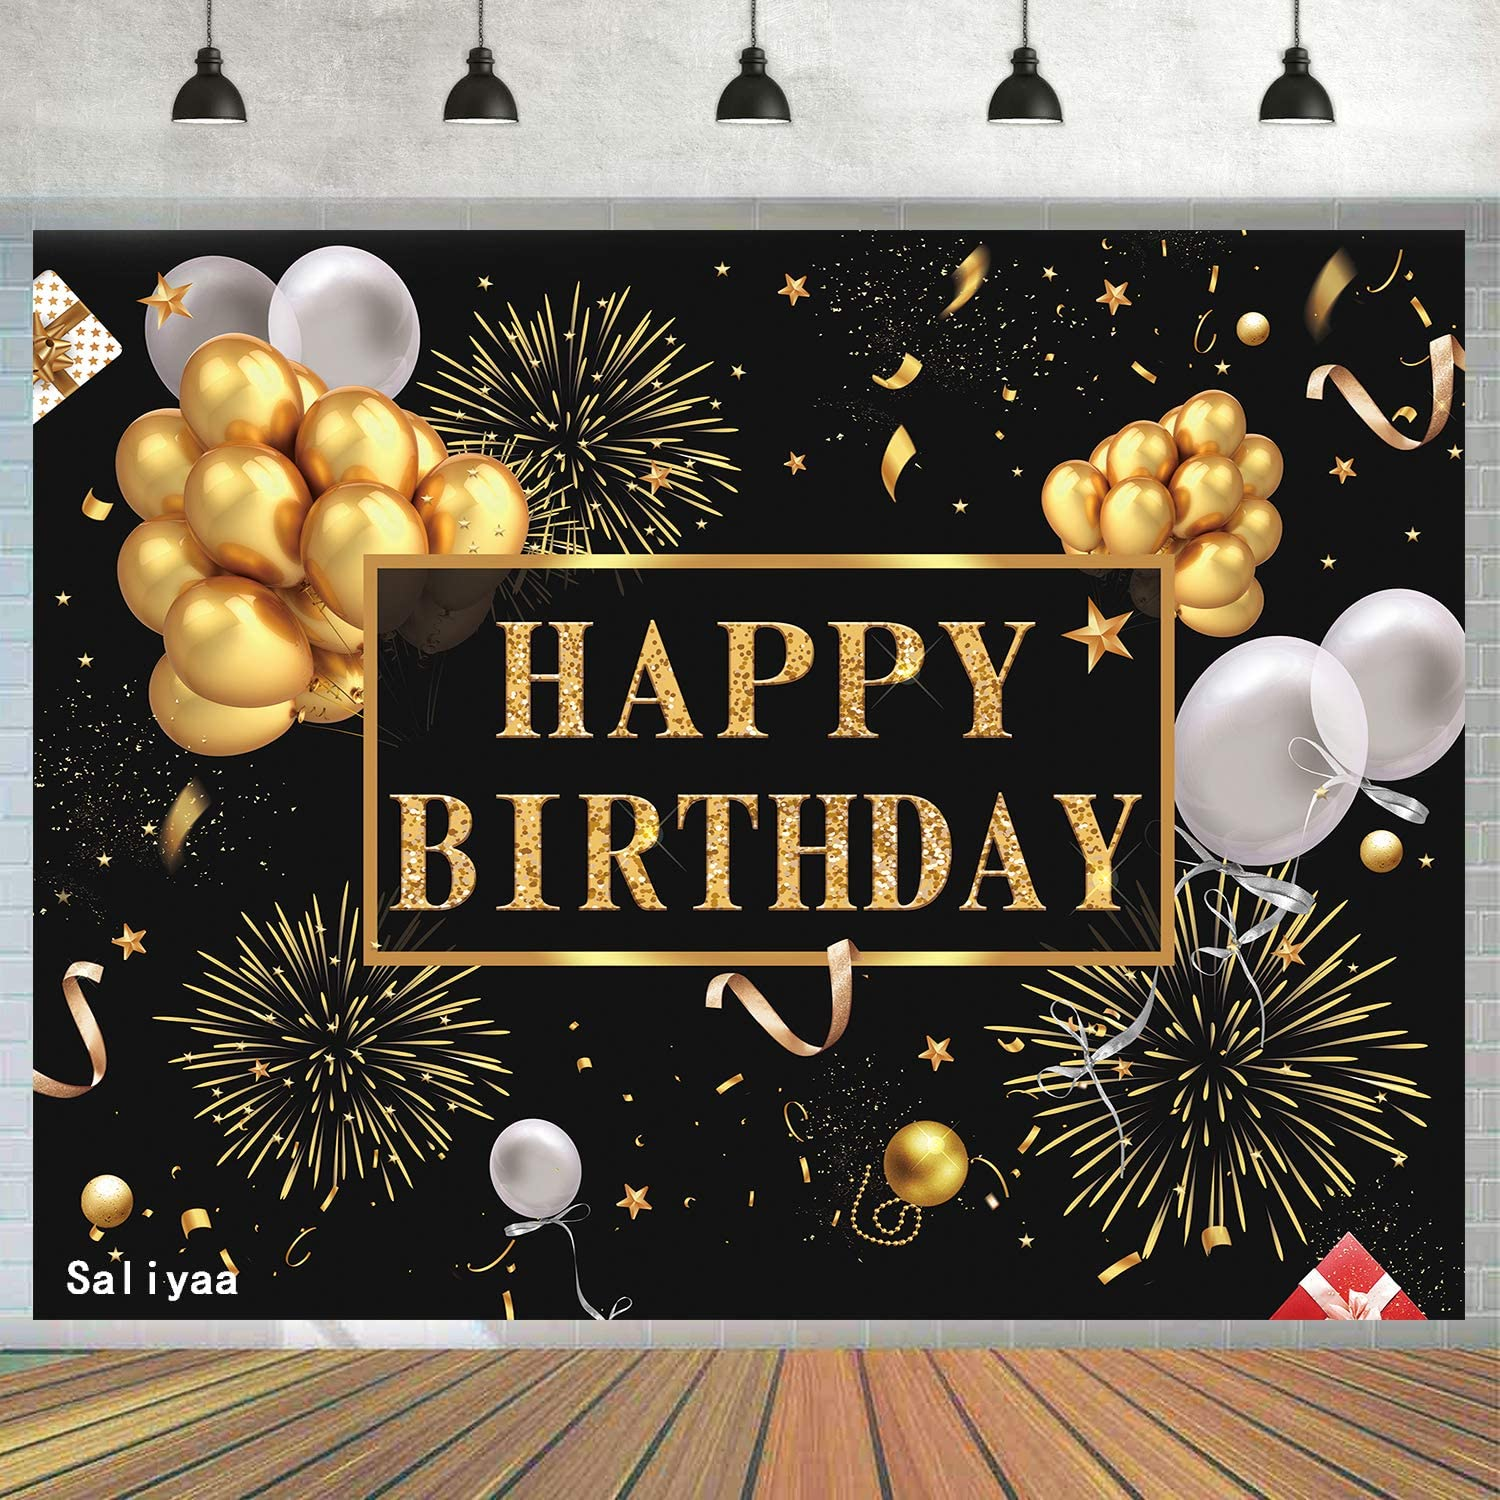 Saliyaa 7x5ft Happy Birthday Backdrop Golden Balloons Stars Fireworks Party Decoration, Black Gold Sign Poster Photo Booth Backdrop Background Banner for Men Women 30th 40th 50th 60th 70th 80th Bday Party Supplies